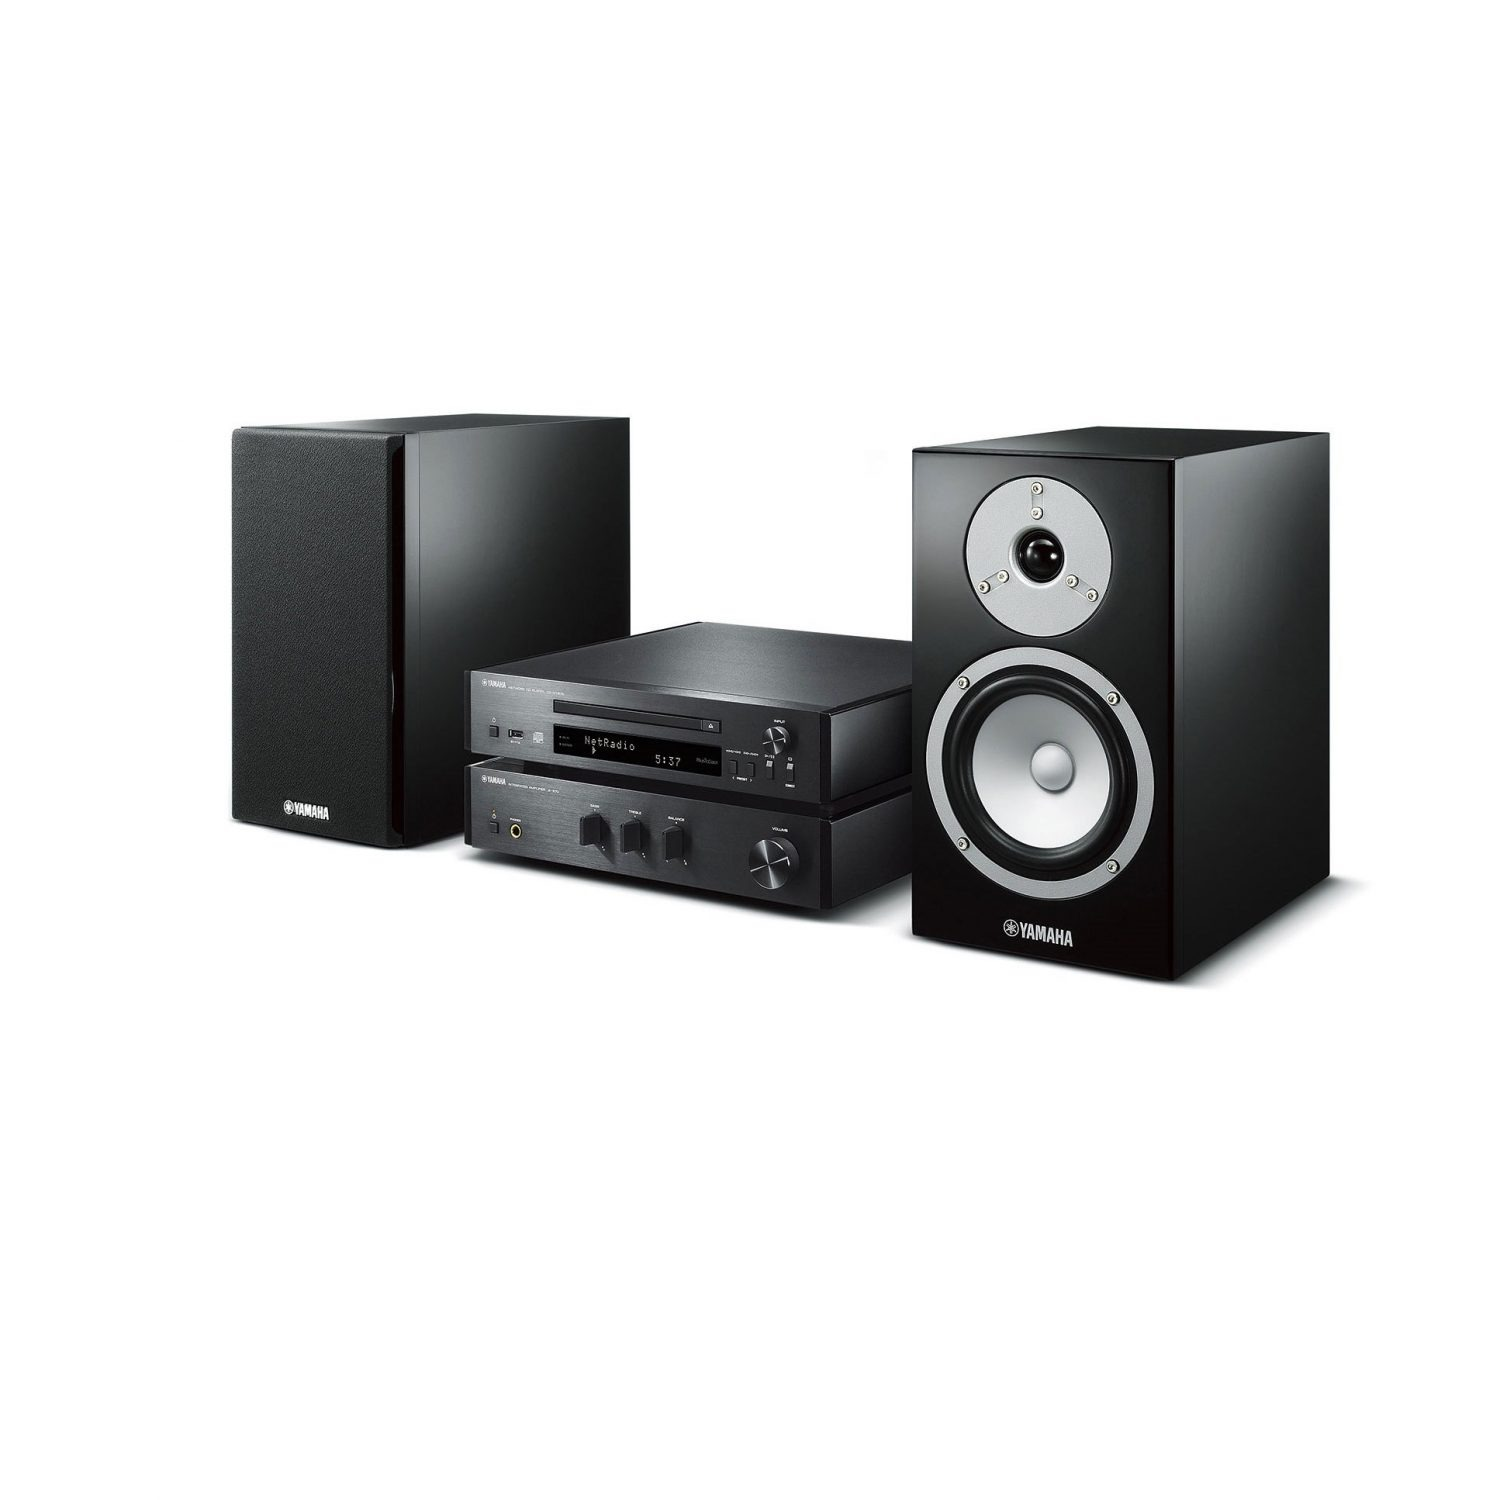 yamaha mcr n670 dab micro chaine hi fi tout en un. Black Bedroom Furniture Sets. Home Design Ideas